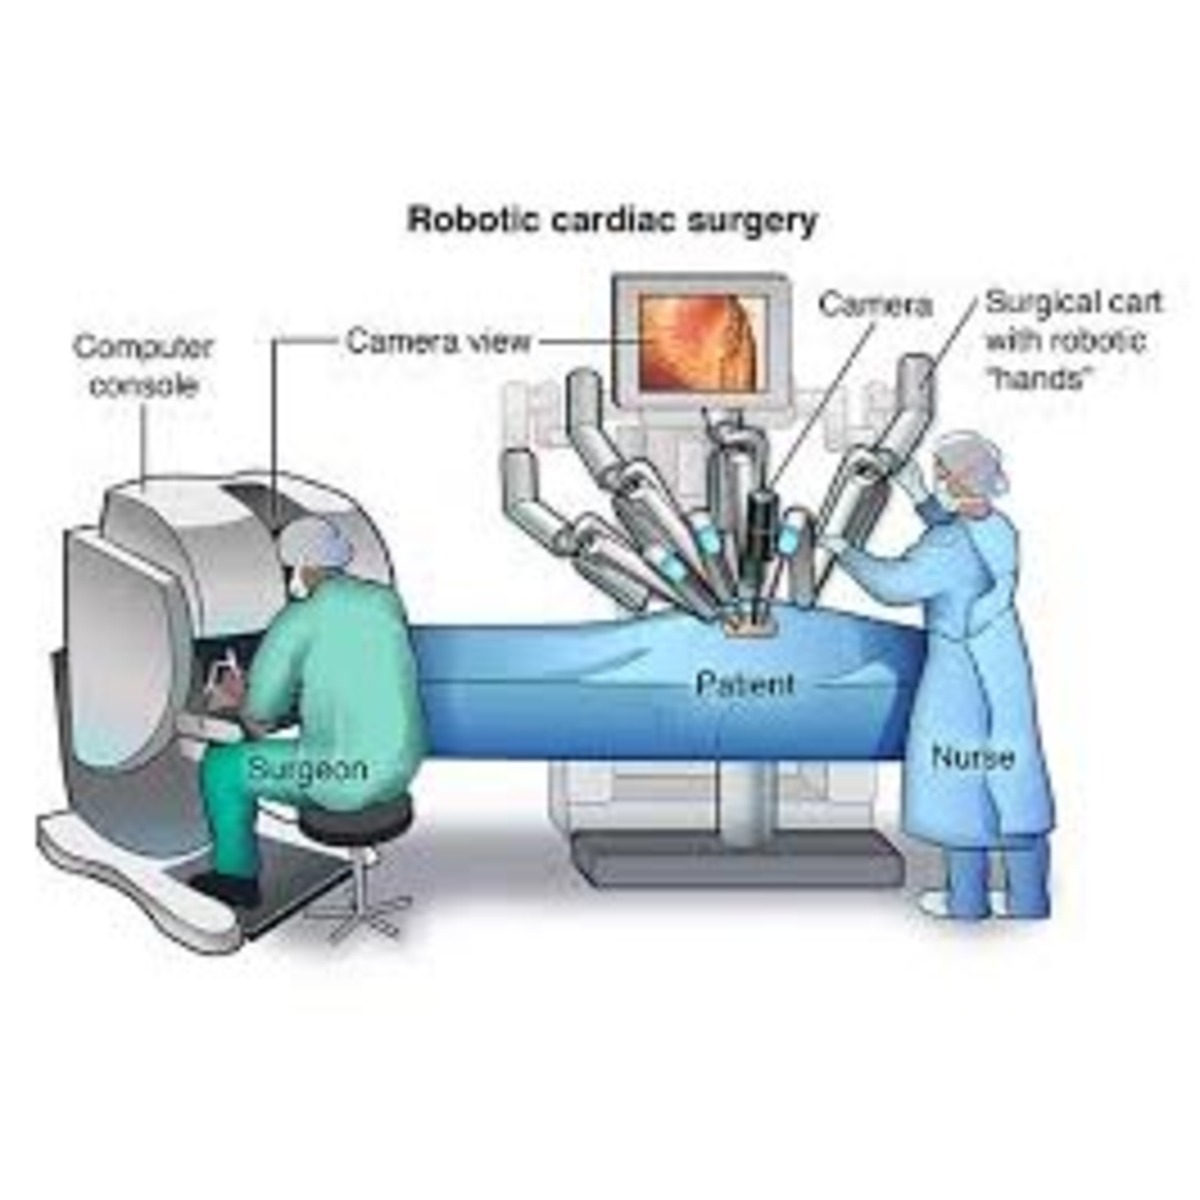 Robots - orthopedic evolution, surgery revolution